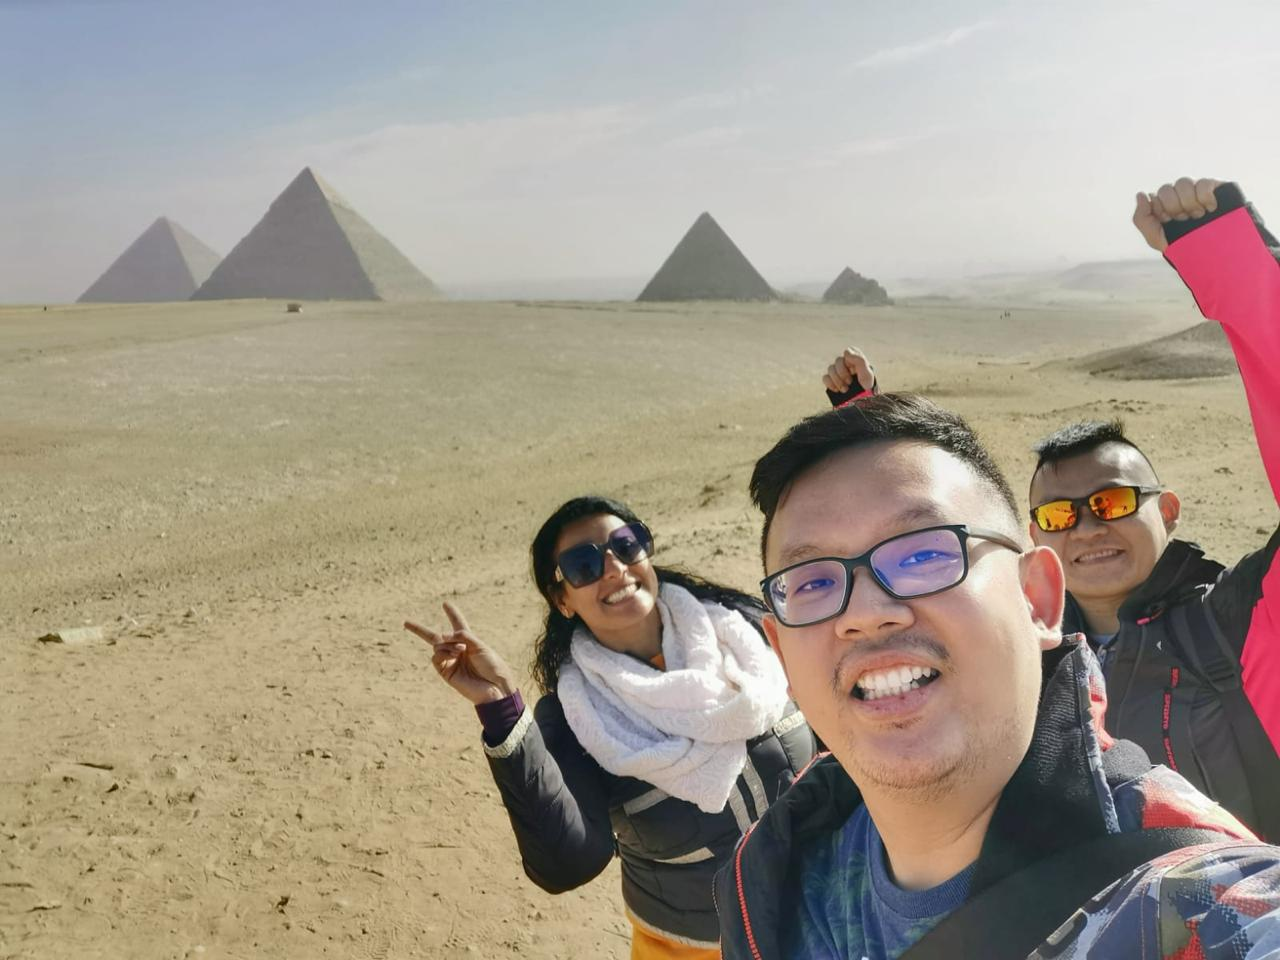 Affordable 4 Days Cairo Tour + Guide & Hotel 3